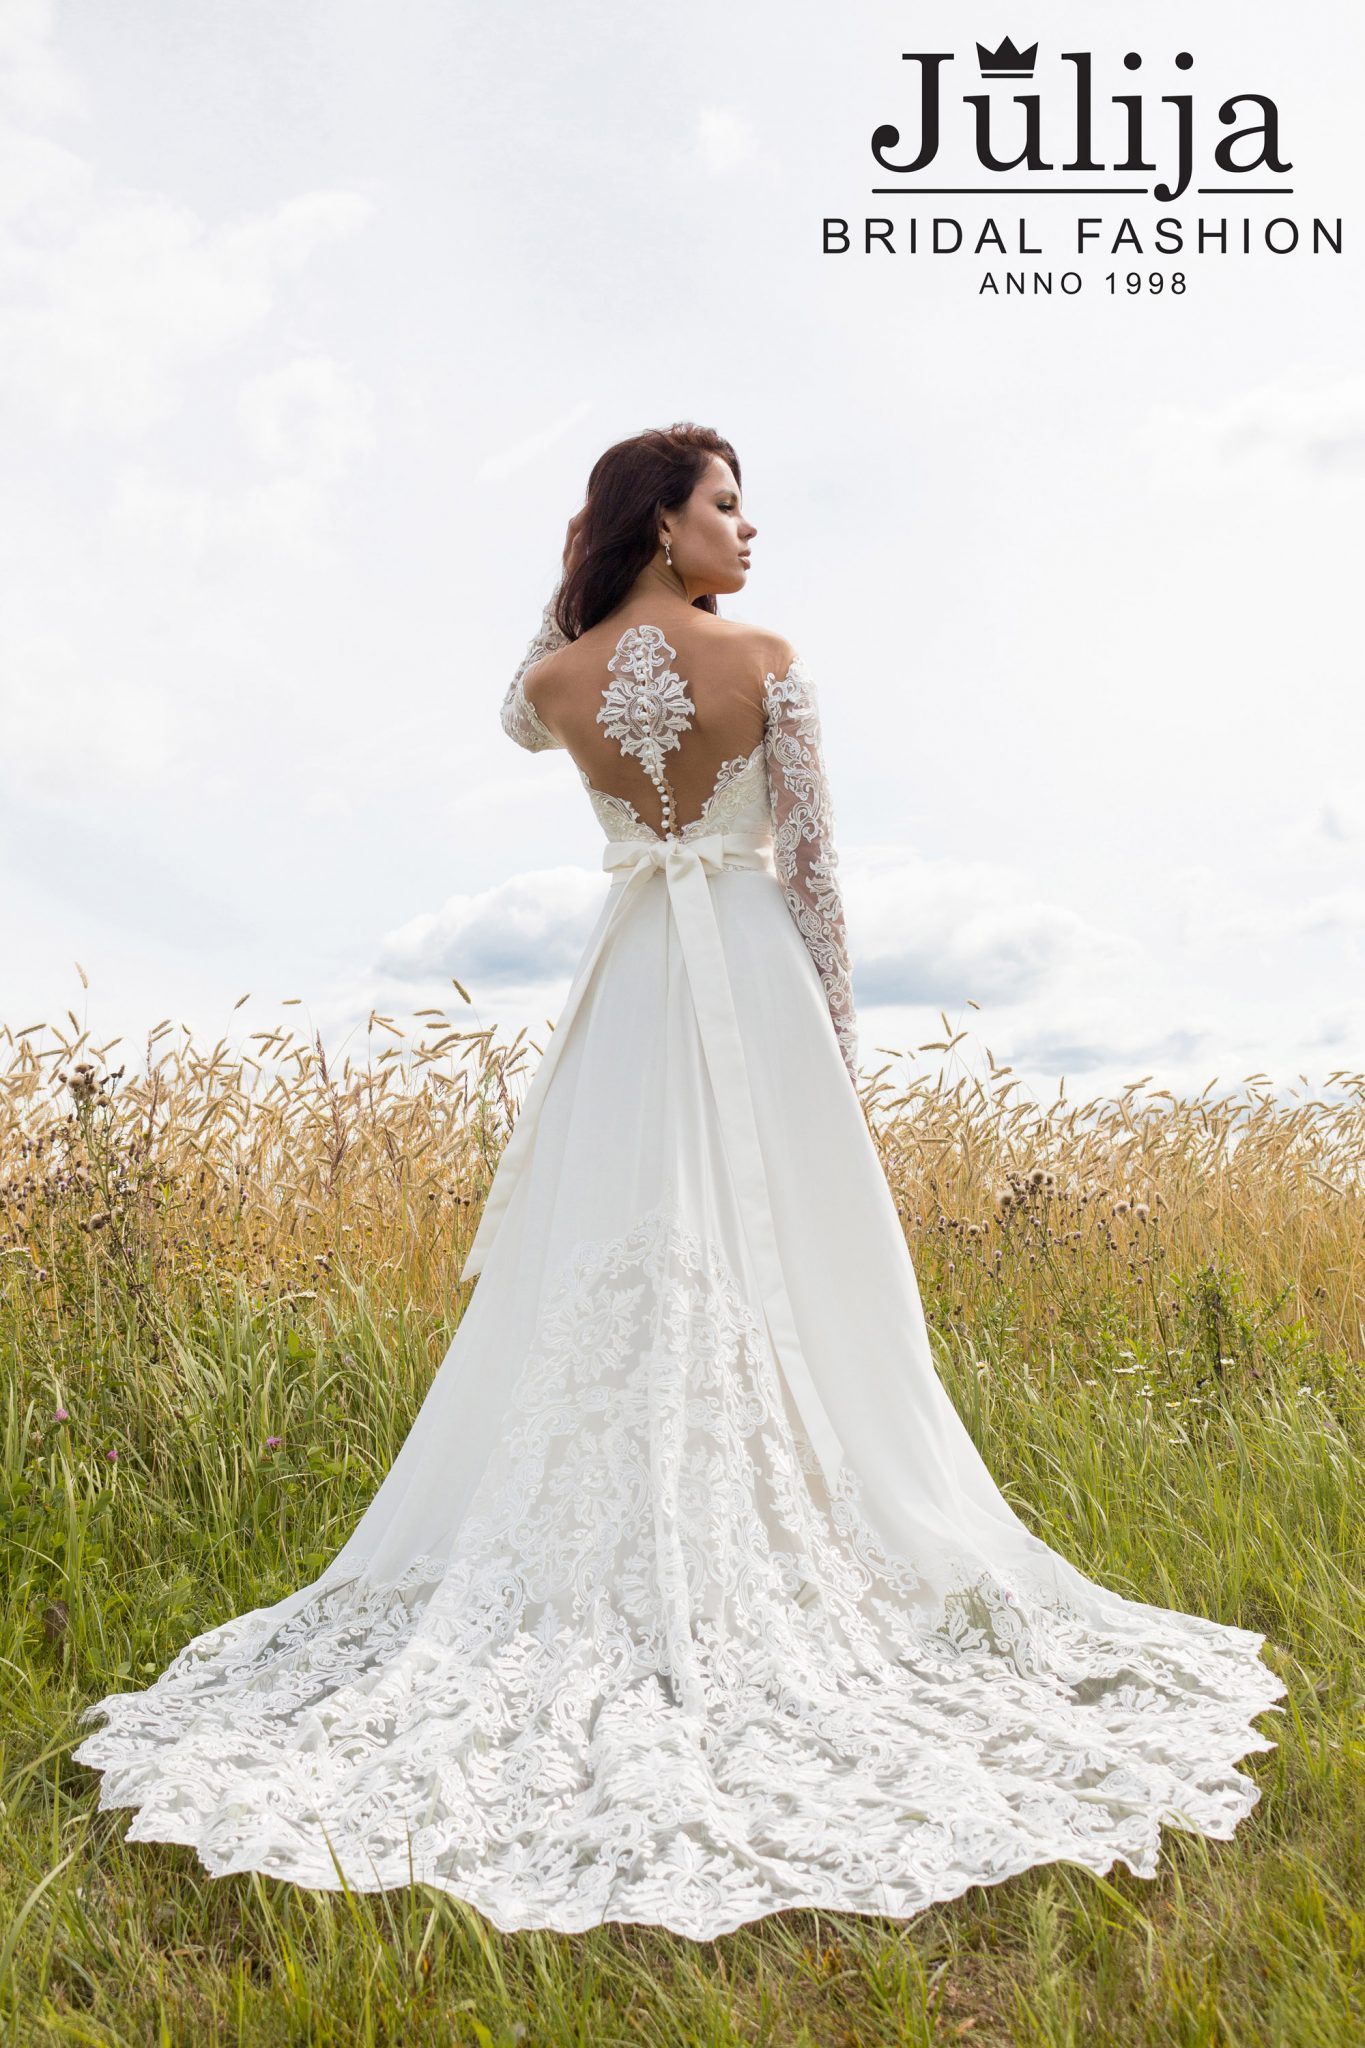 Minnesota | Wholesale wedding dresses - Julija Bridal Fashion